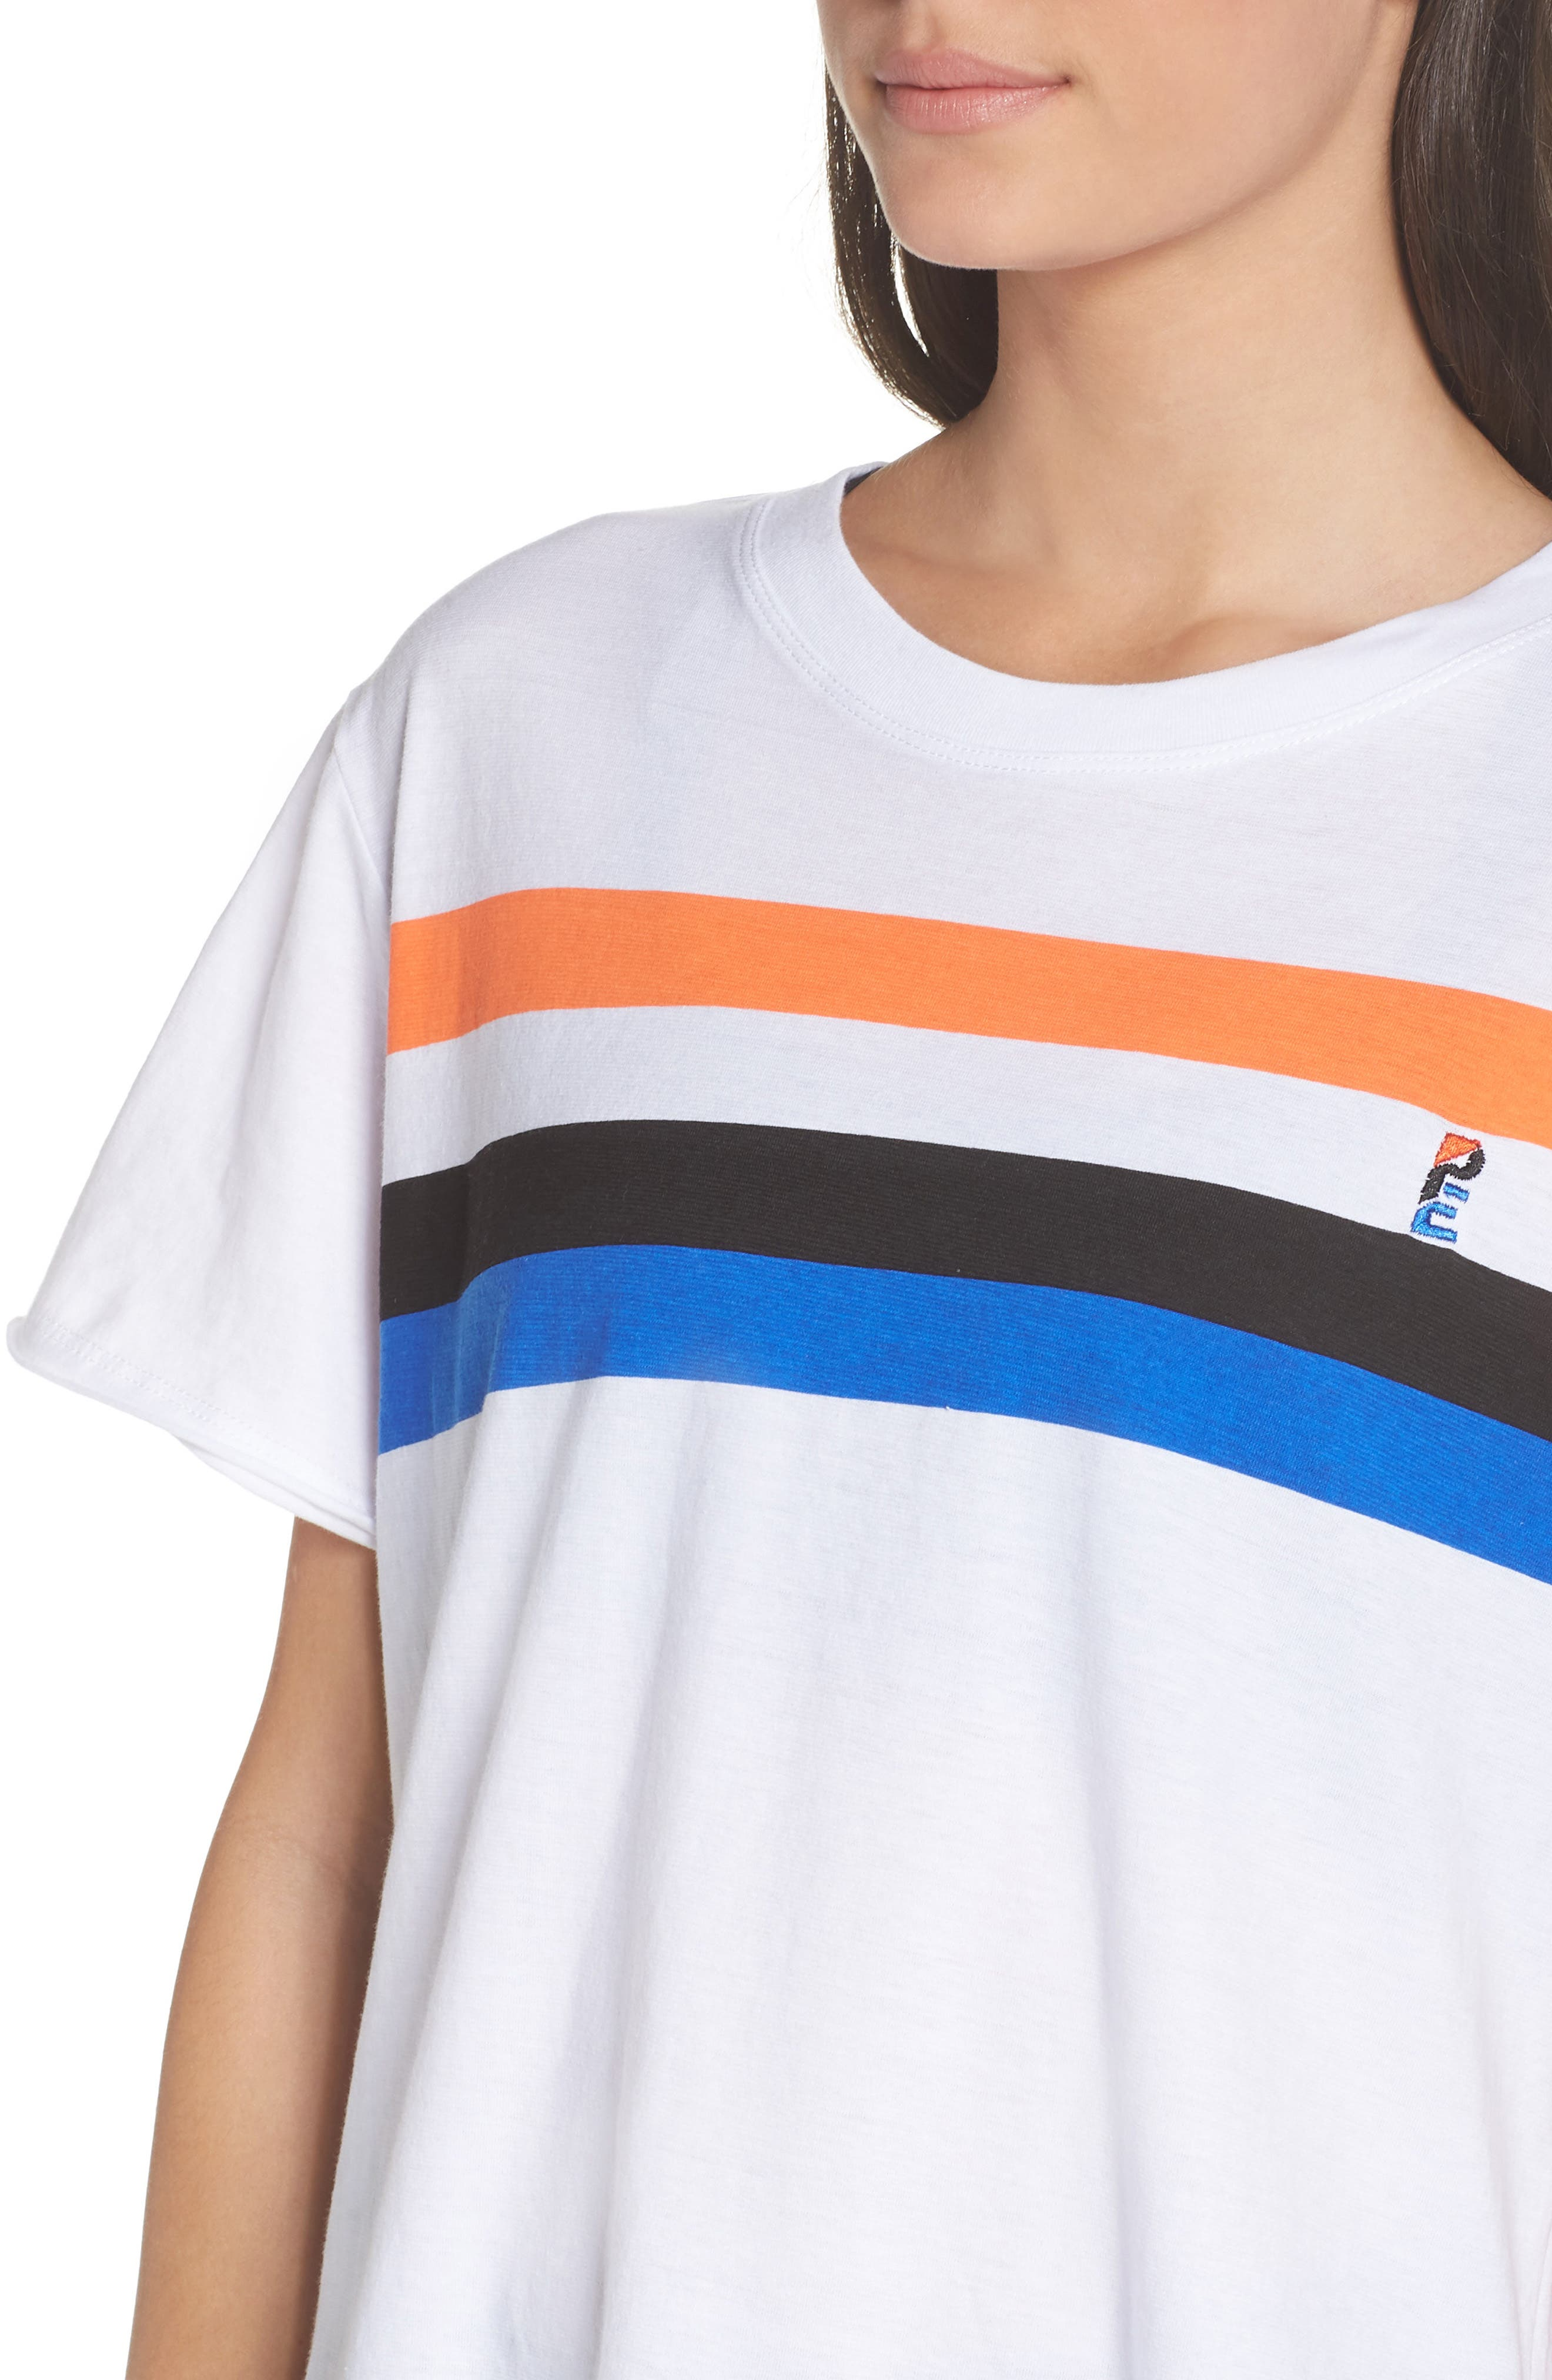 Middle Distance Tee,                             Alternate thumbnail 4, color,                             White